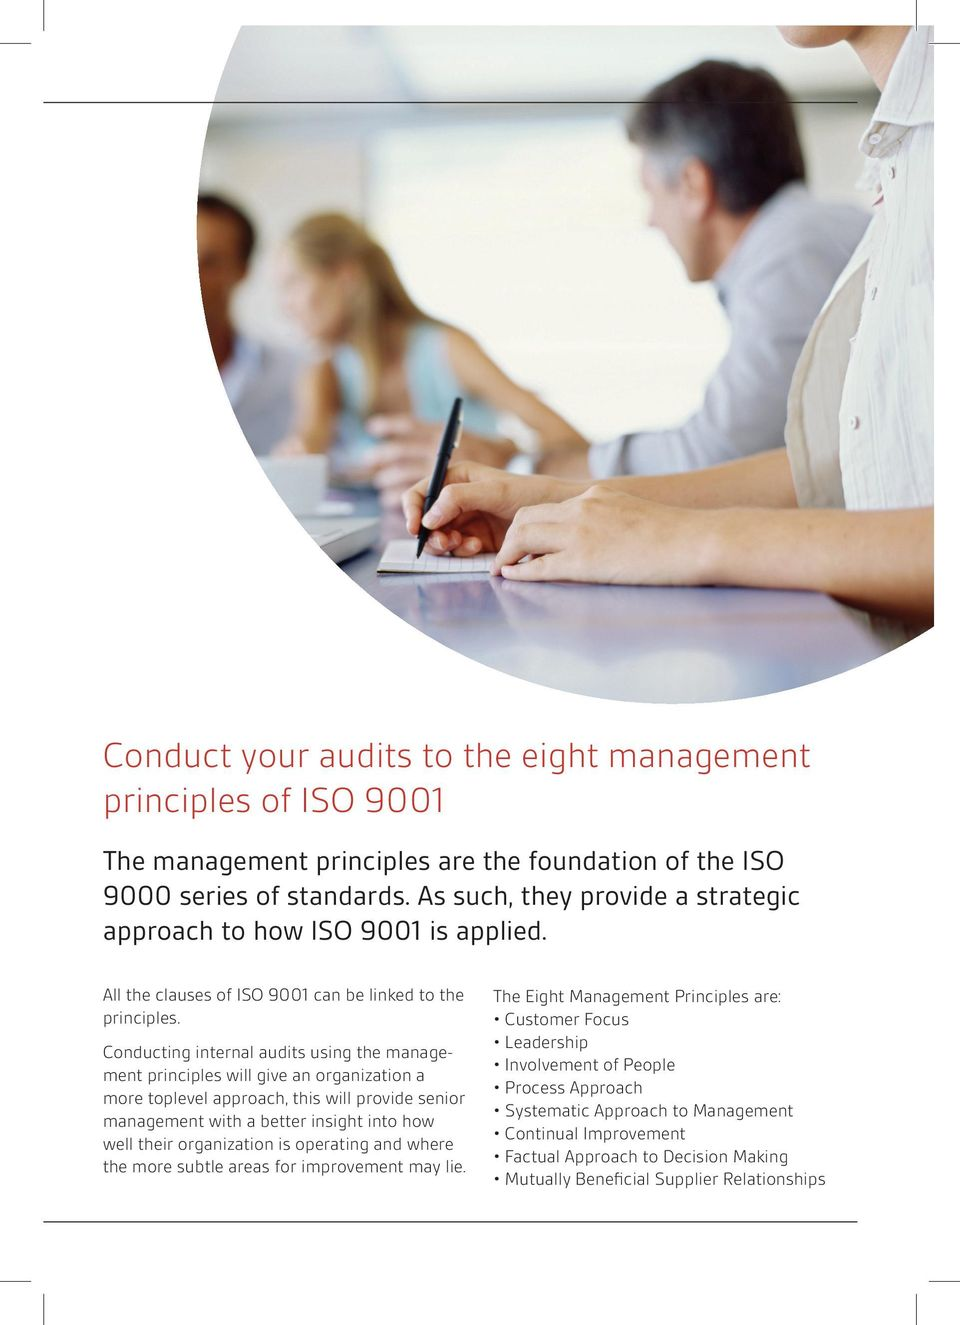 Conducting internal audits using the management principles will give an organization a more toplevel approach, this will provide senior management with a better insight into how well their